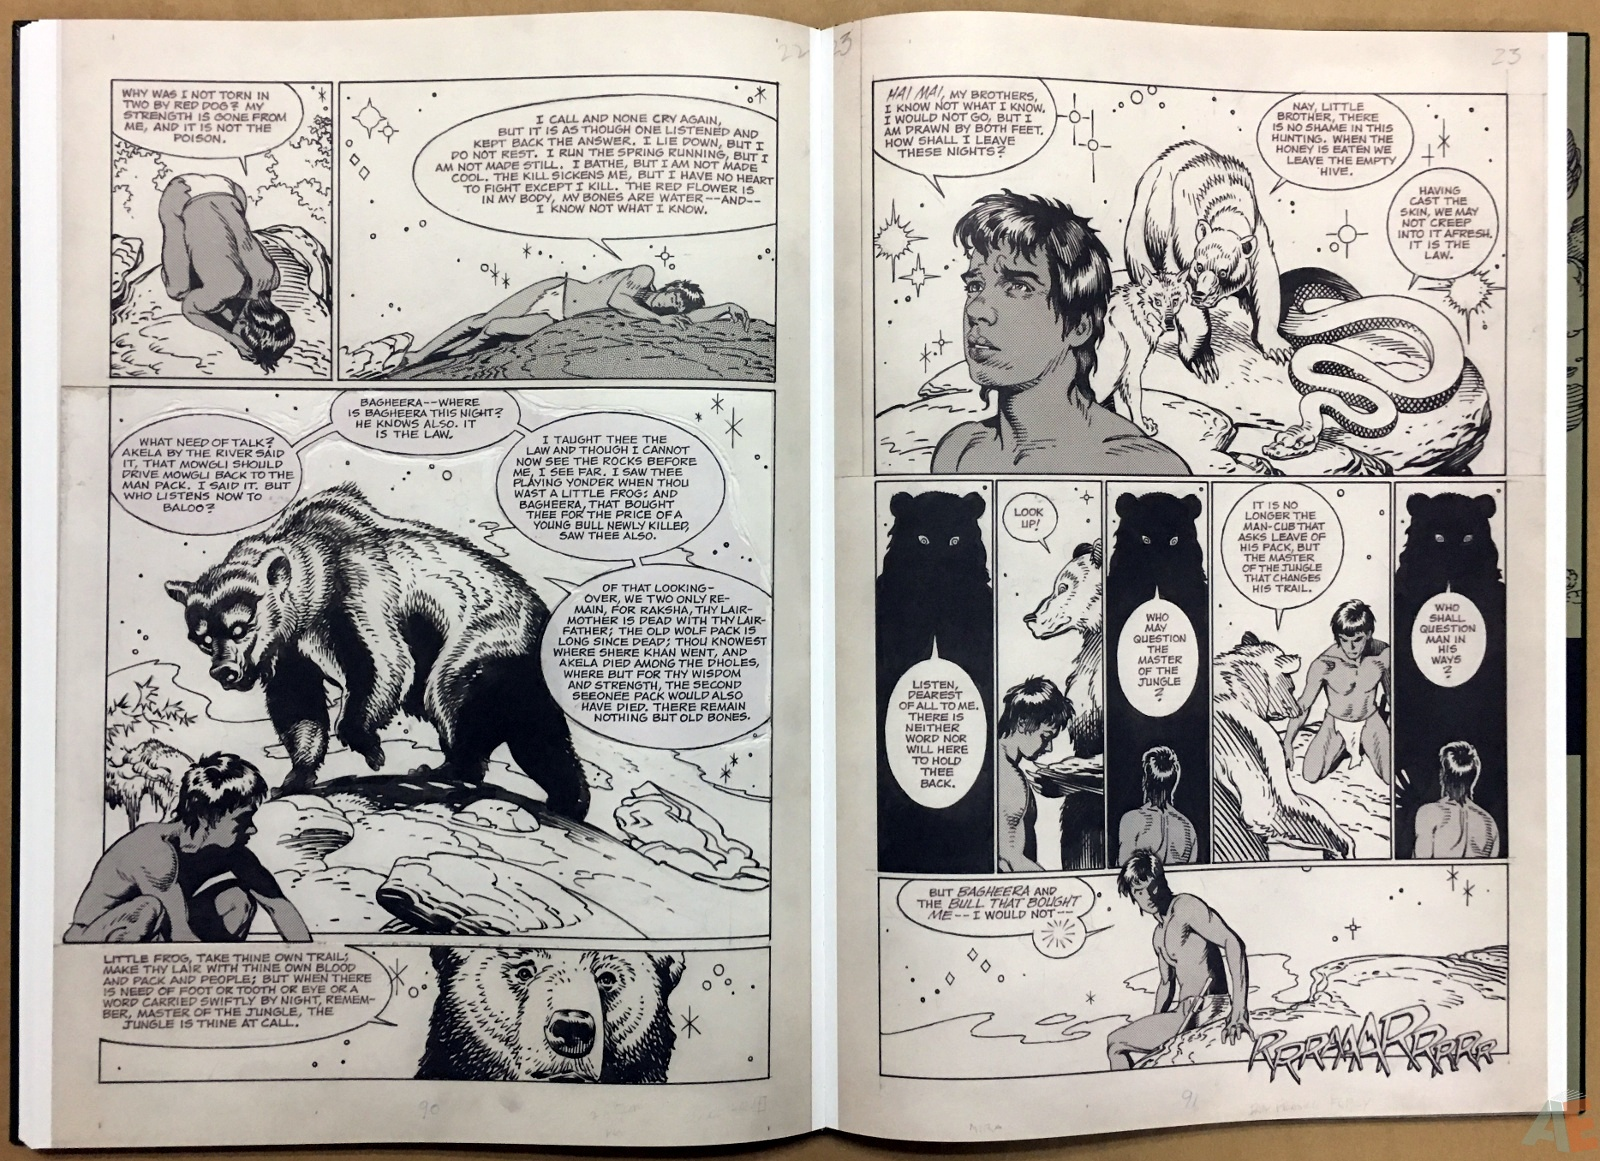 P. Craig Russell's Jungle Book And Other Stories Fine Art Edition 28